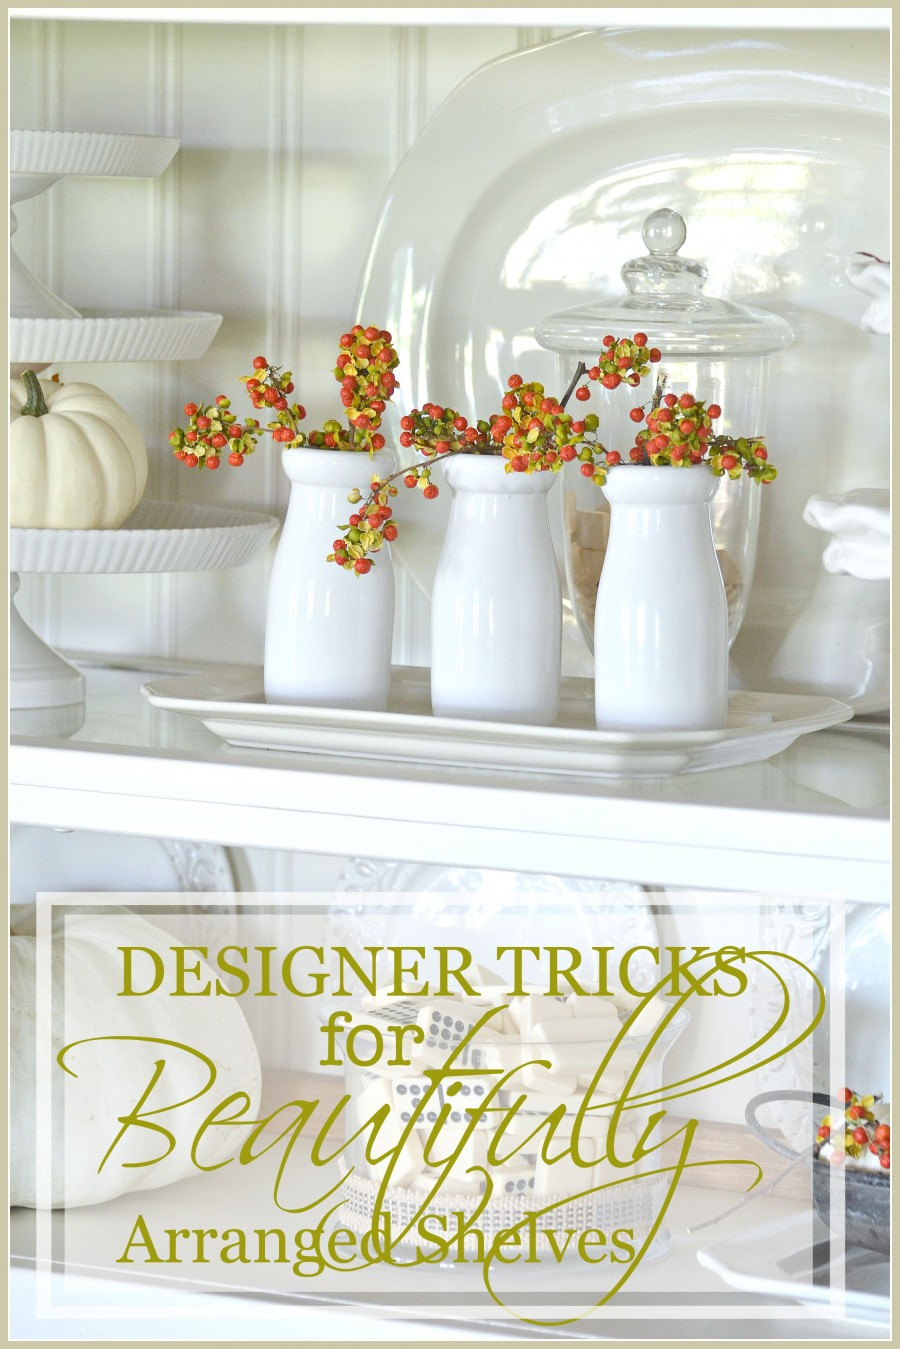 DESIGNER TRICKS FOR BEAUTIFULLY ARRANGED SHELVES-stonegableblog.com